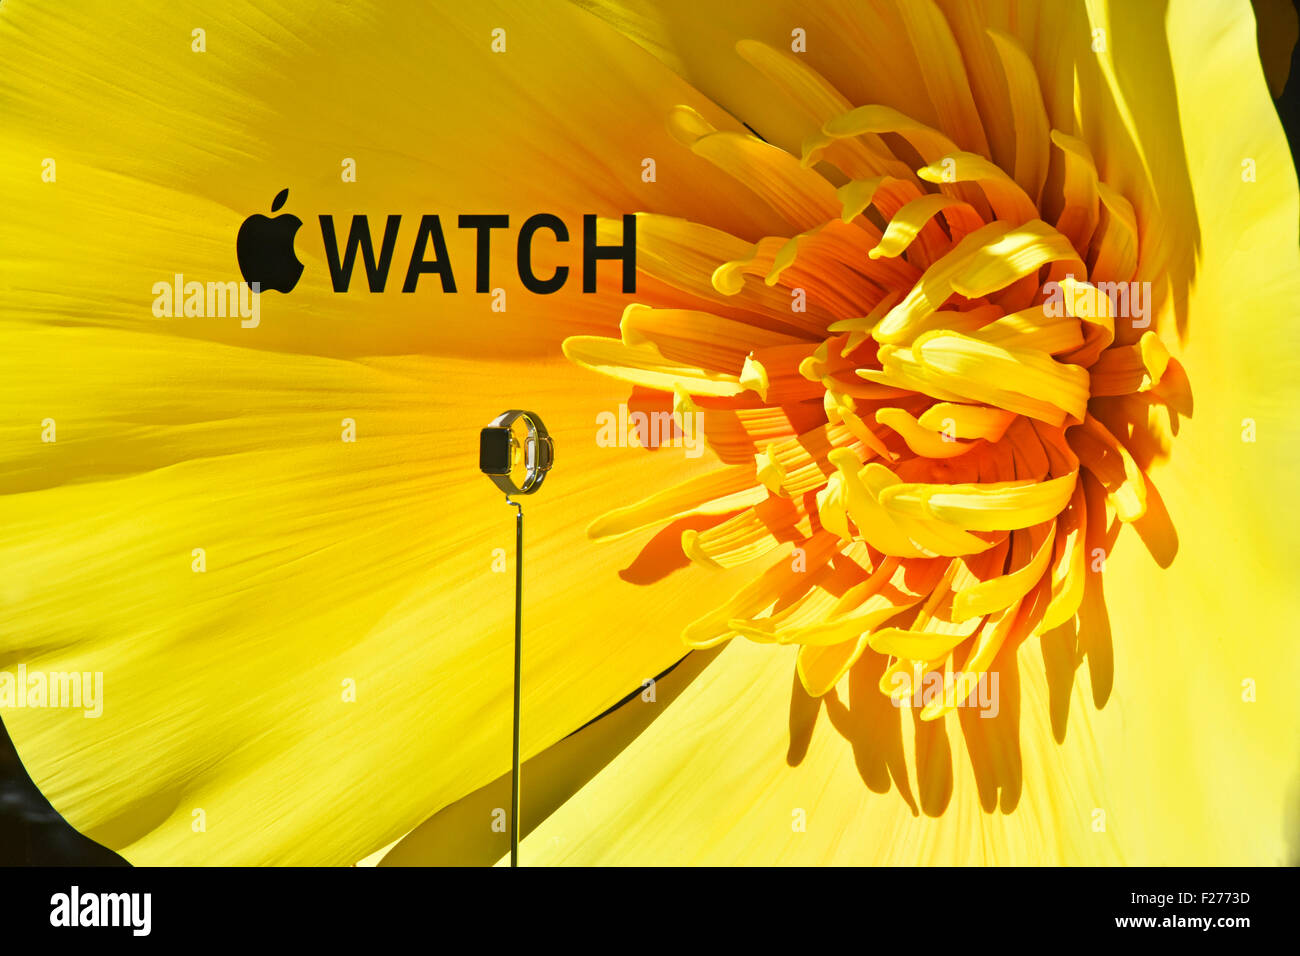 Selfridges department store promotion window display for Apple Watch theming on background of large colourful flowers - Stock Image